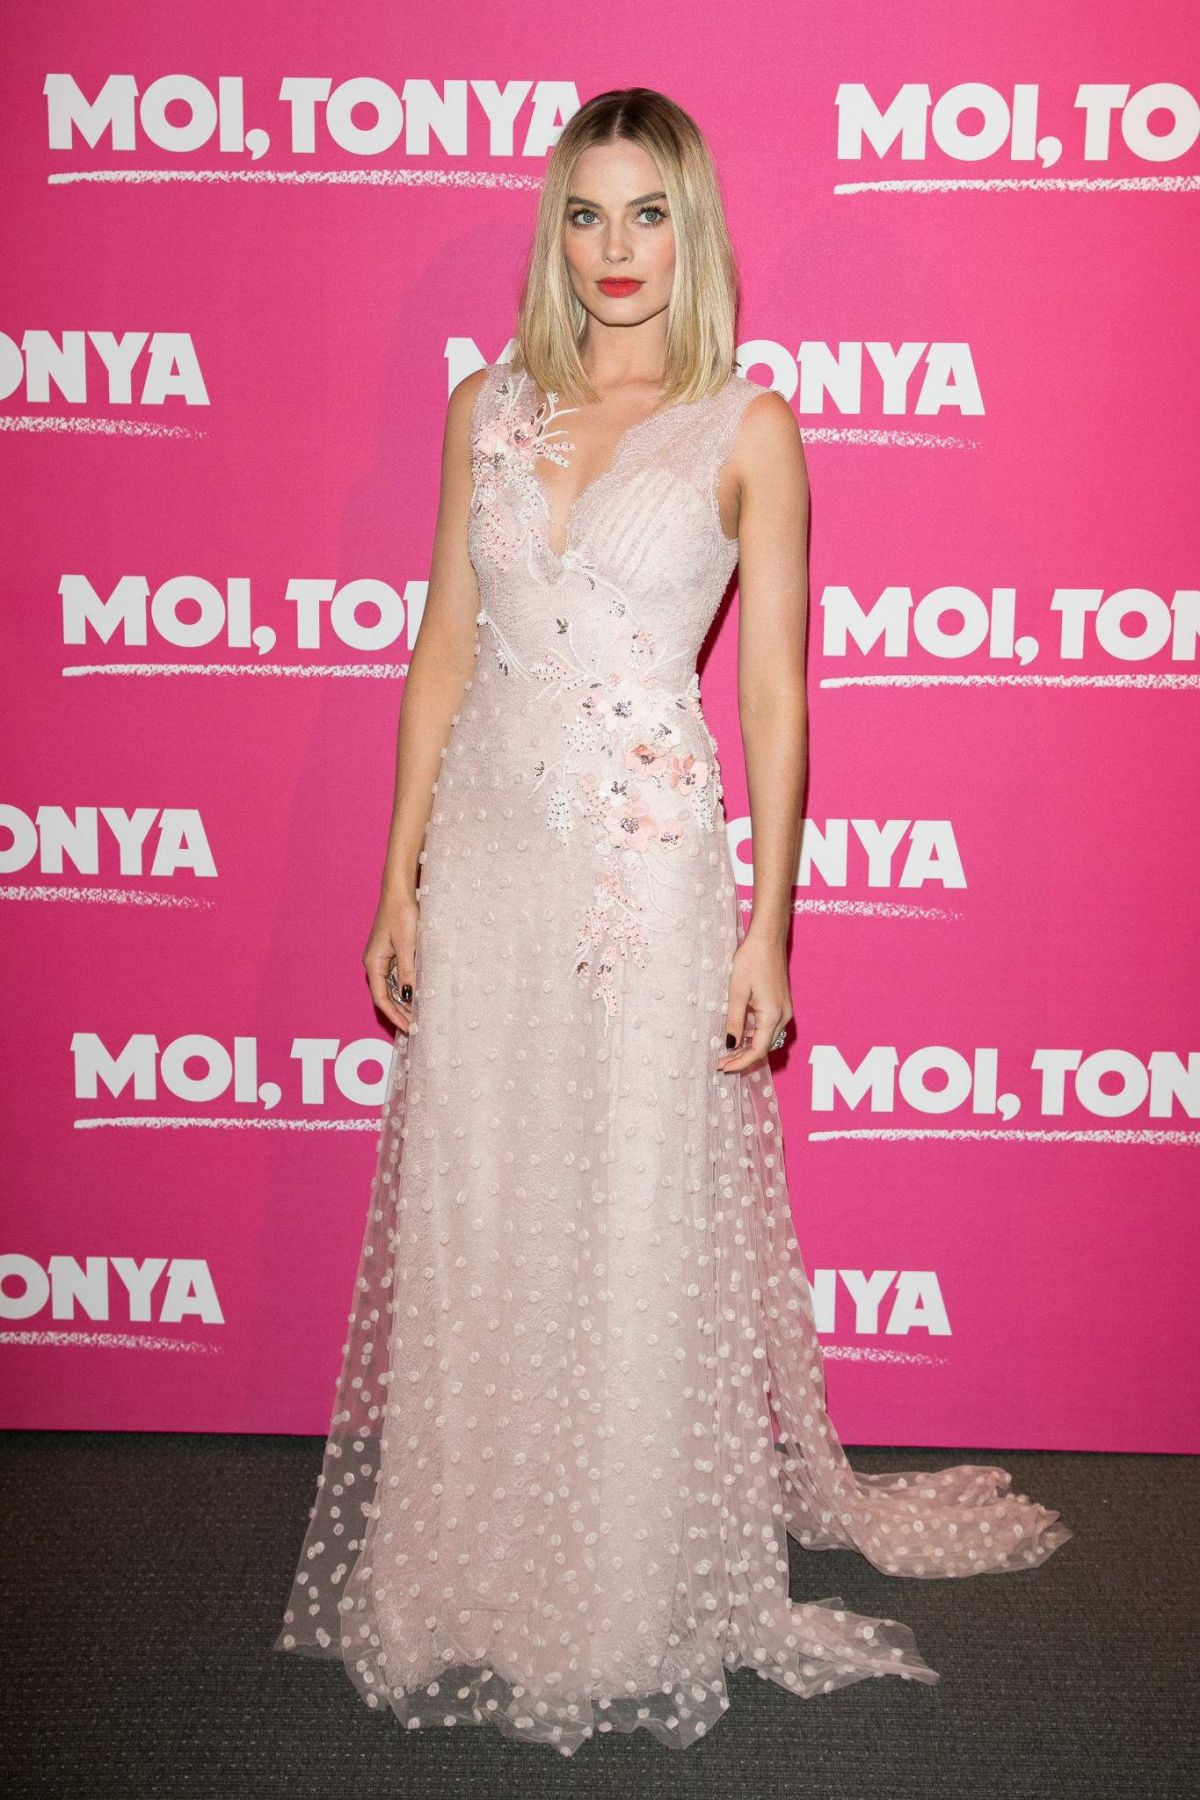 margot-robbie-at-i-tonya-premiere-in-paris